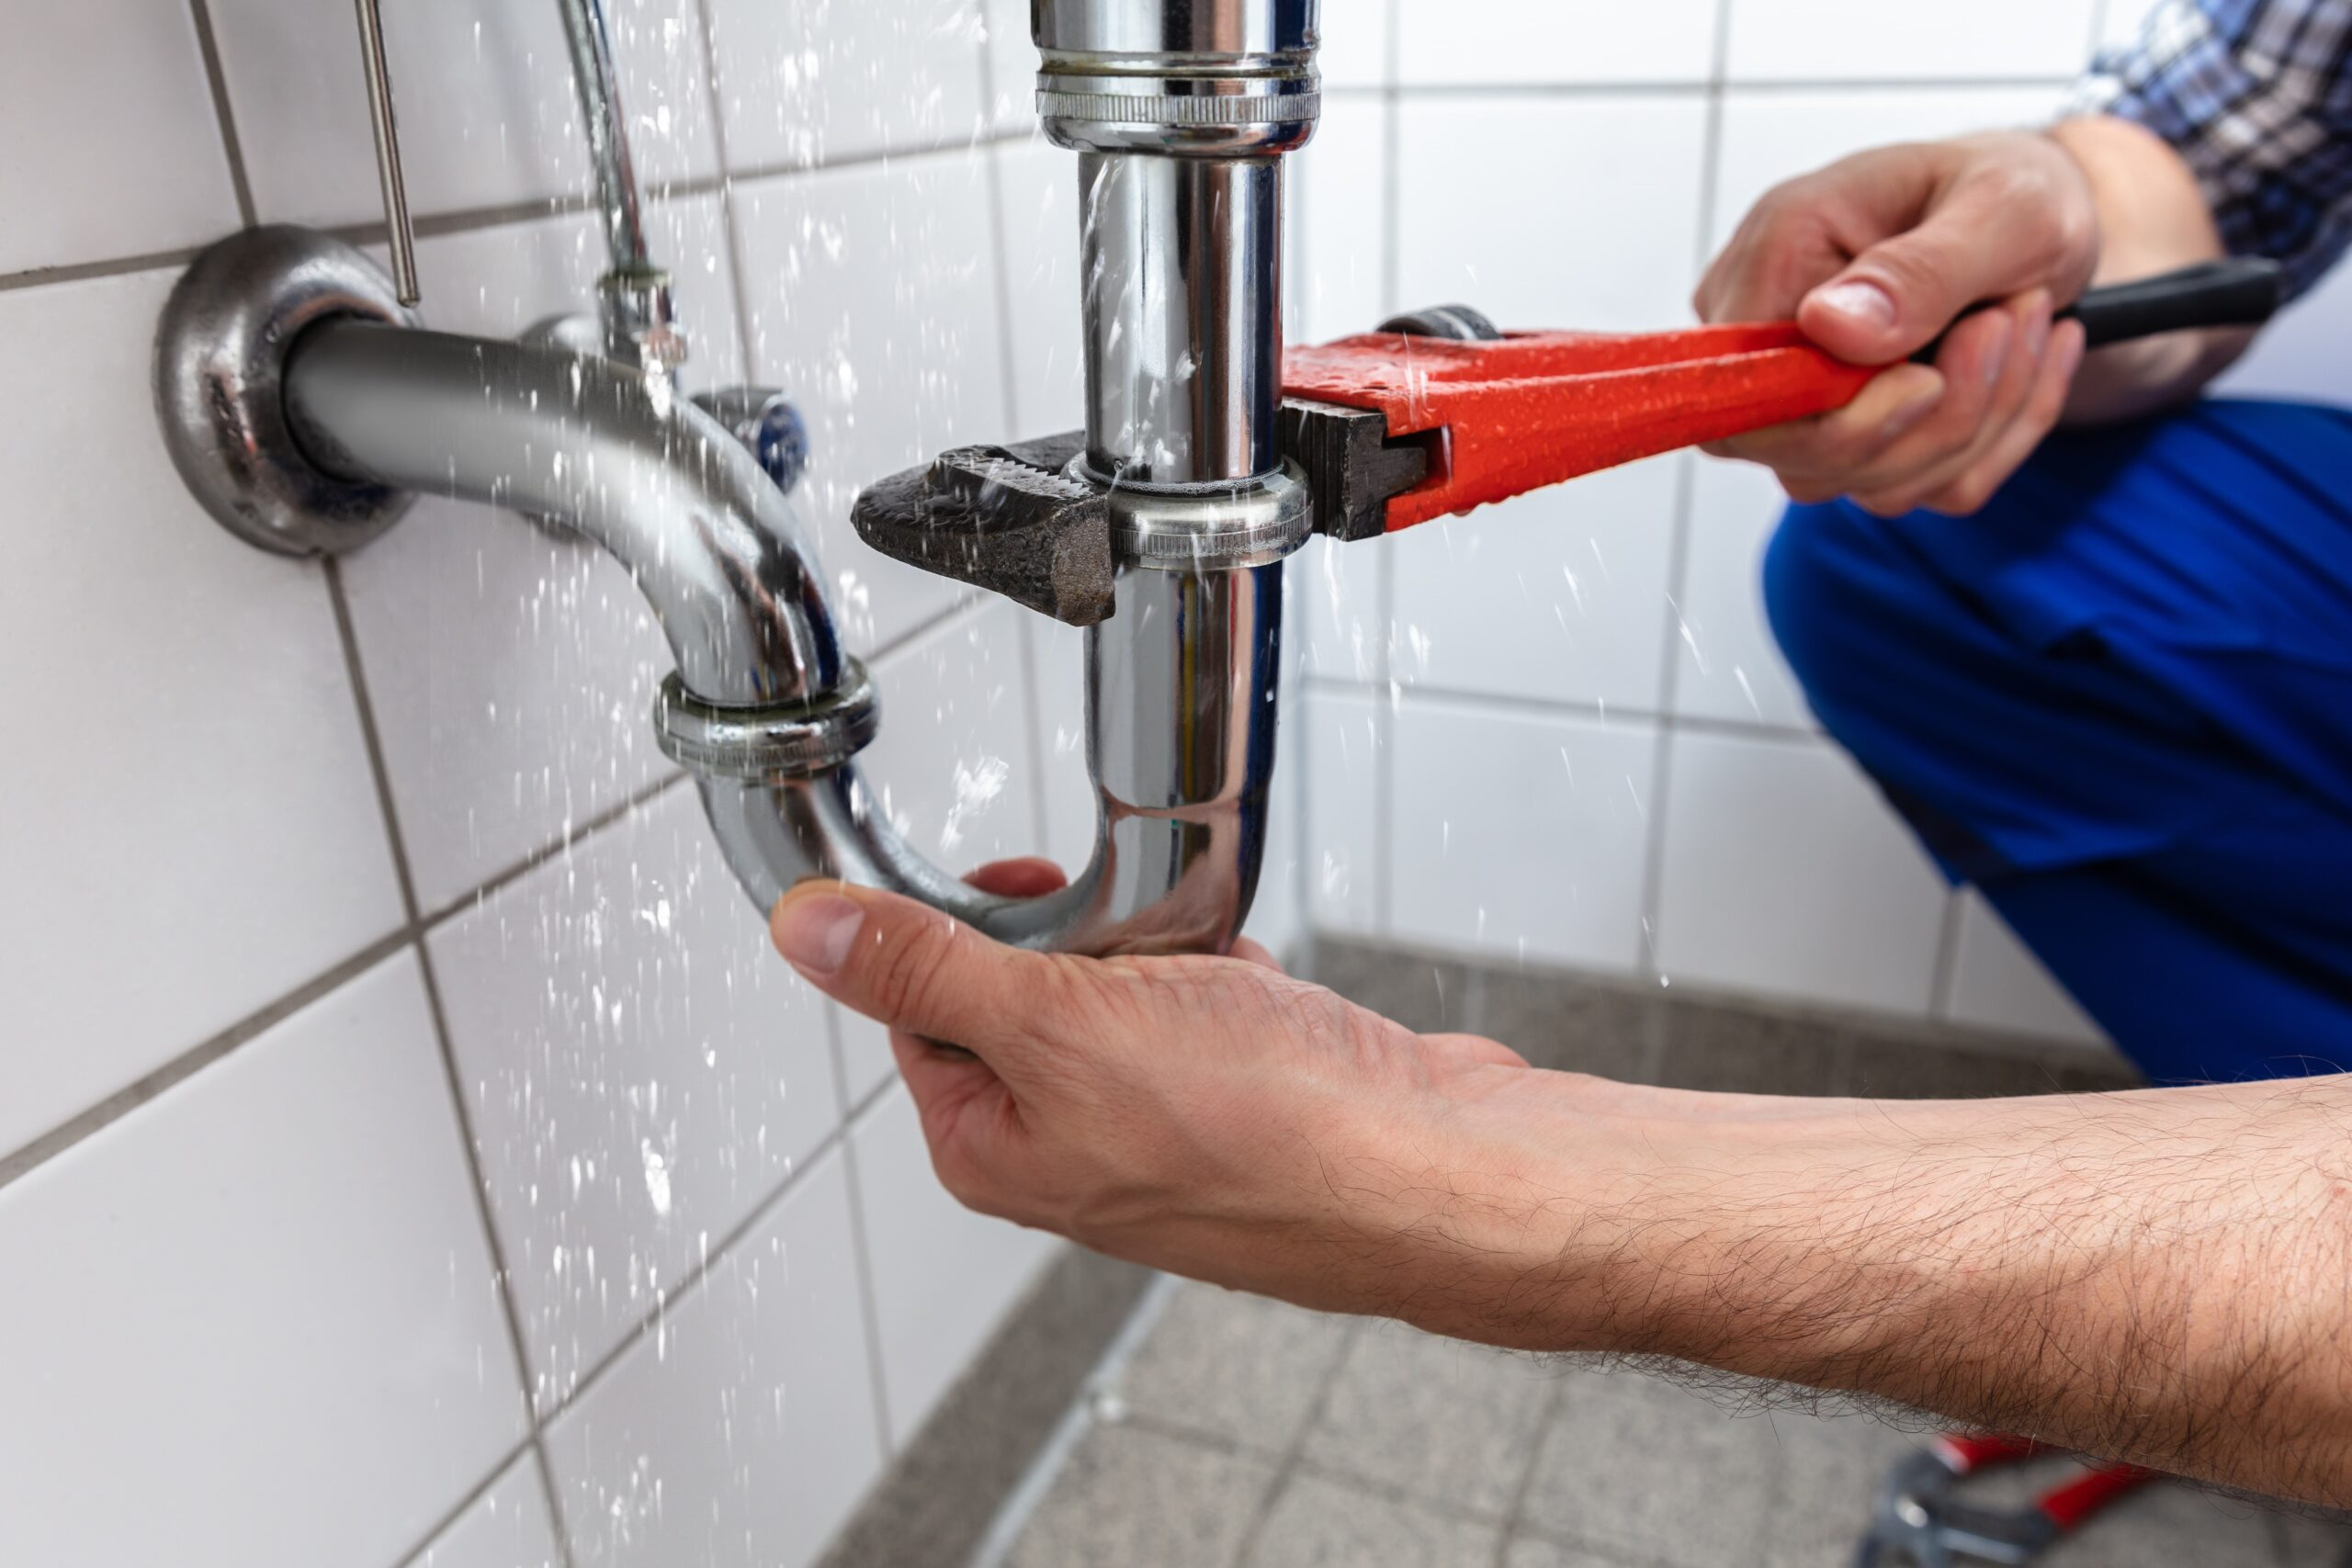 Diy or call the professionals: know when to hire an expert plumbing service